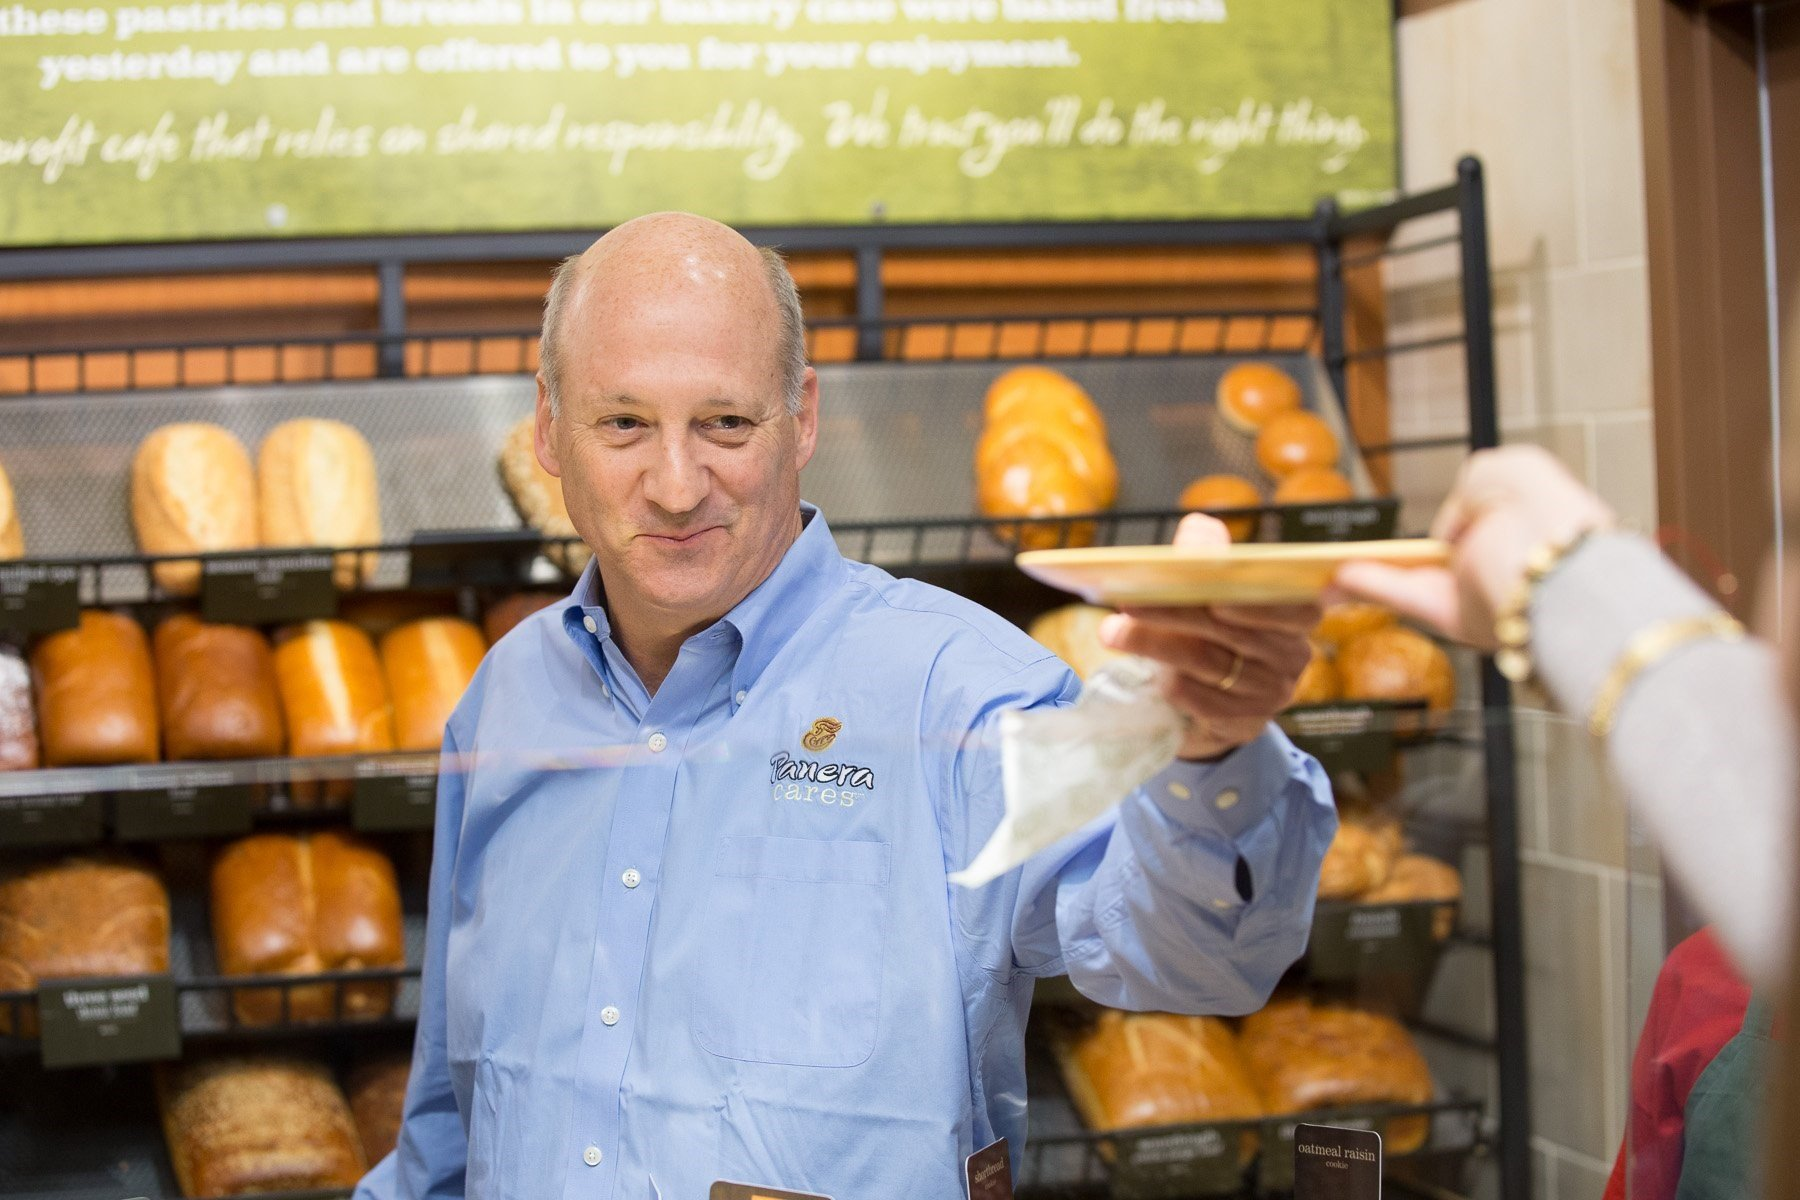 Krispy Kreme owners buy Panera Bread for $7.5B